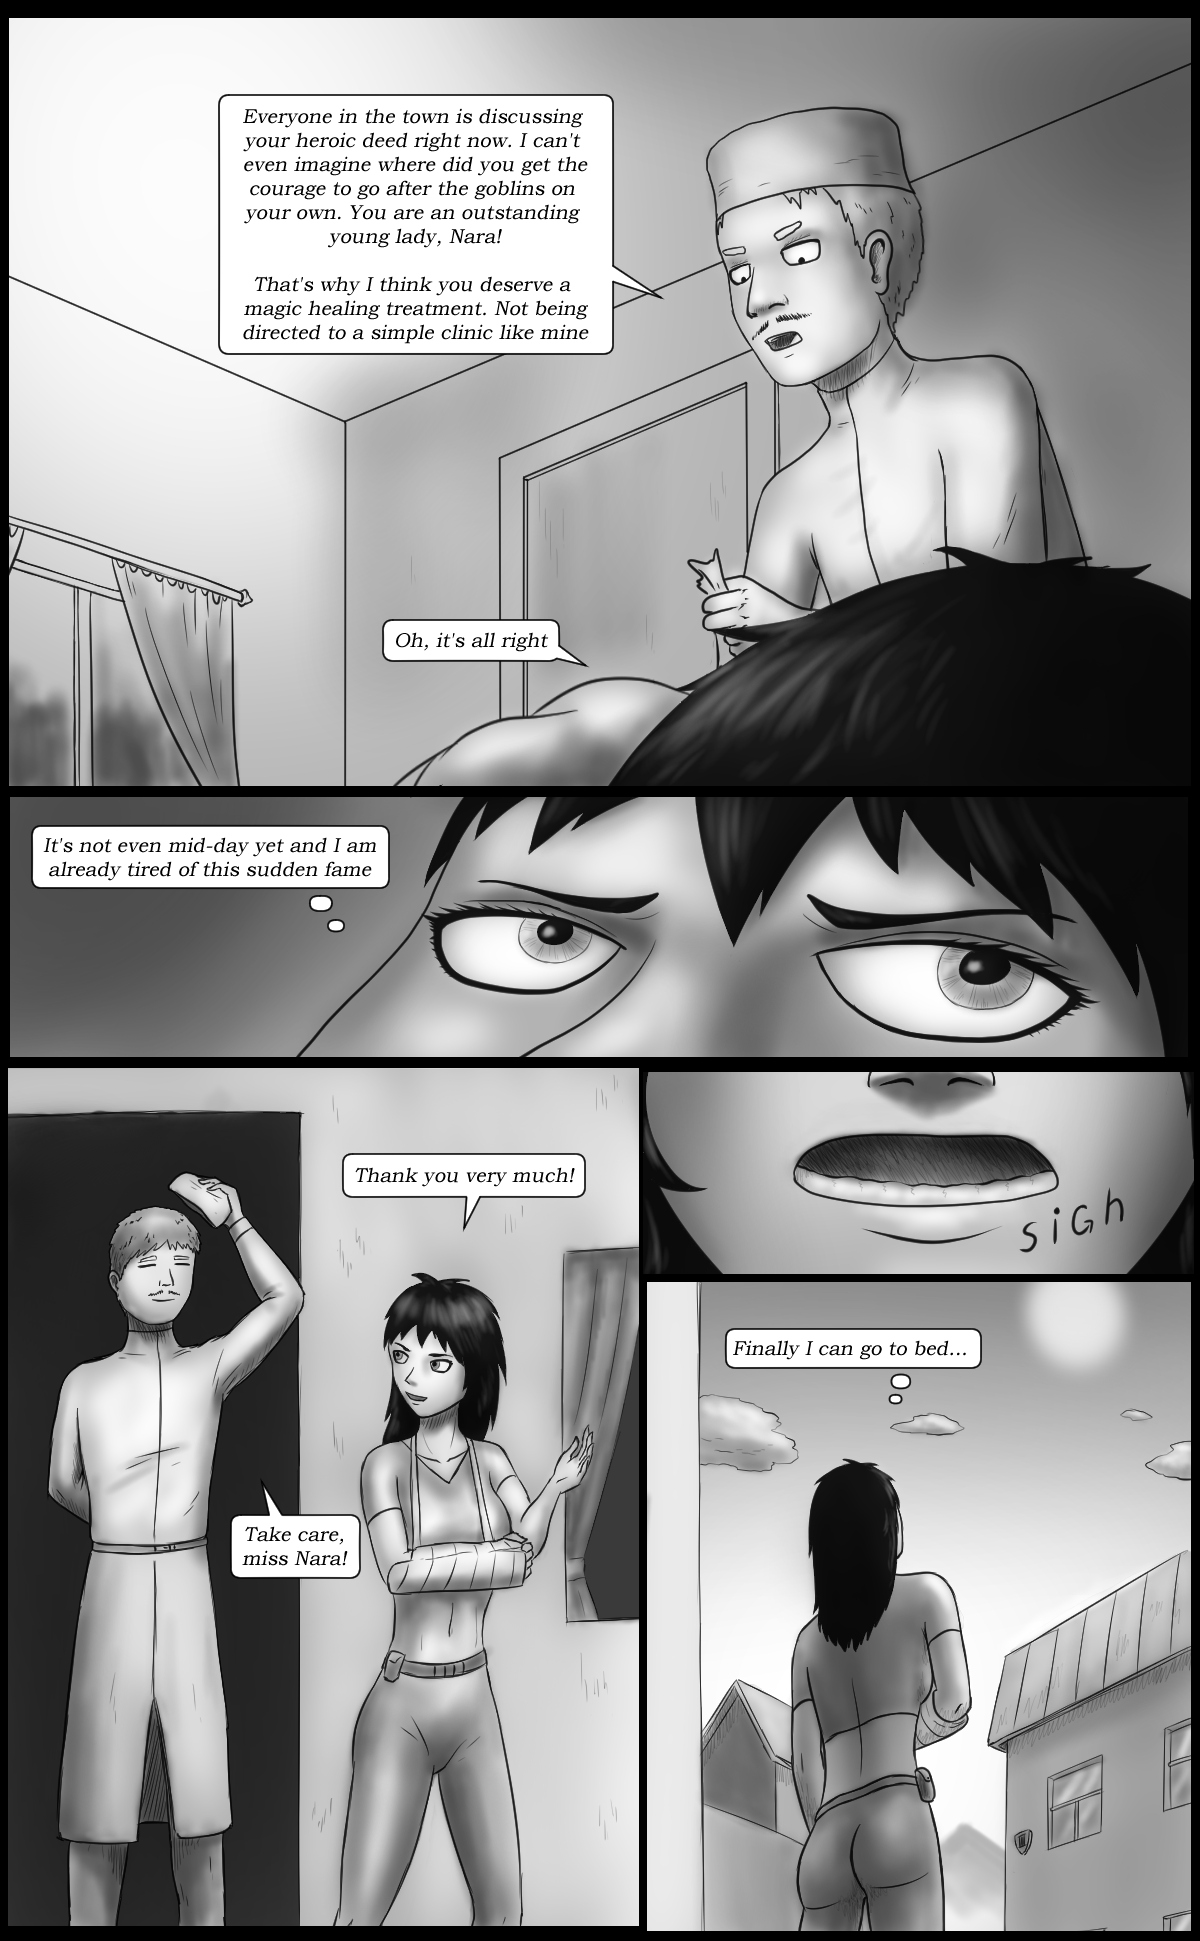 Page 4 - Tired of fame